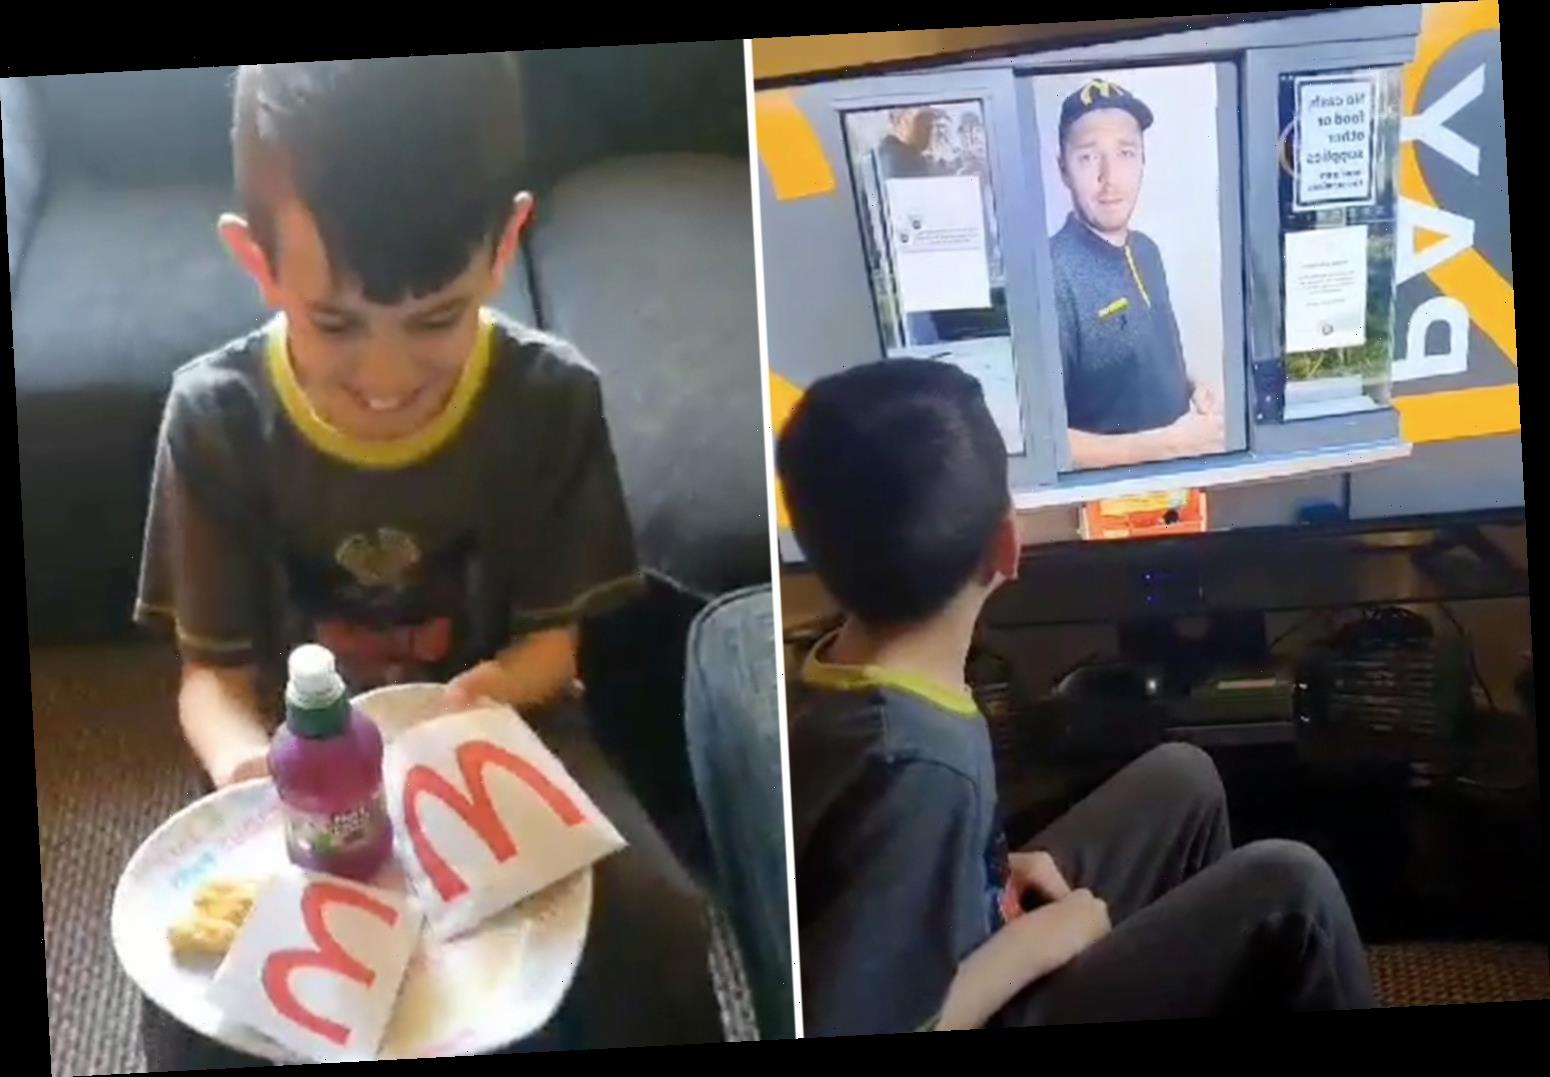 Mum recreates a McDonald's drive-through experience from home complete with look-a-like Happy Meals for her kids